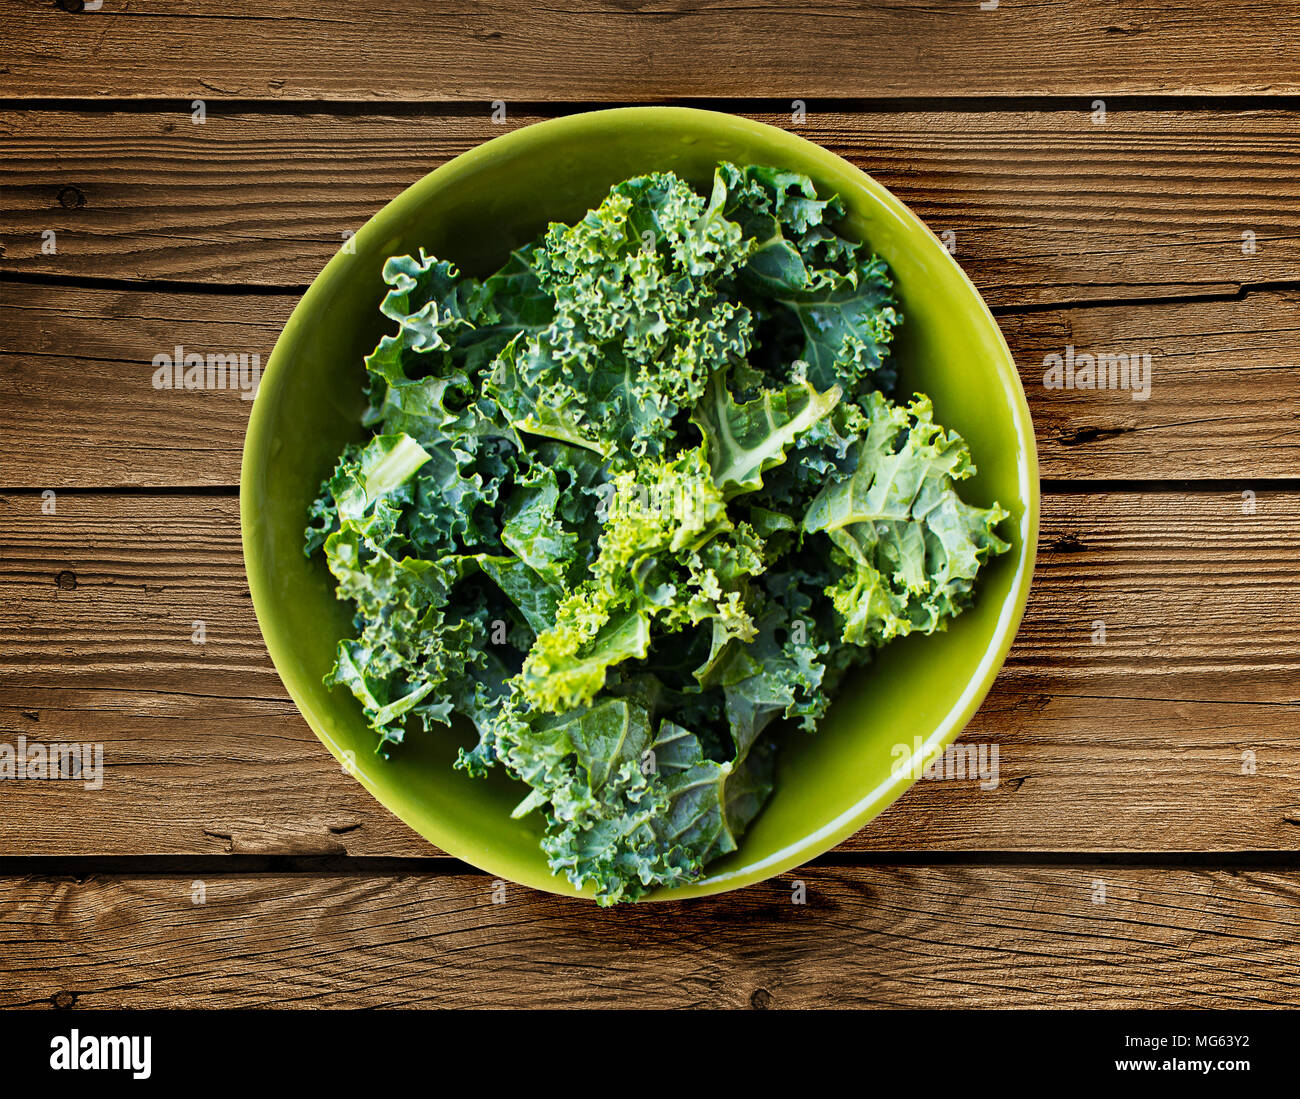 Fresh kale in a green bowl over a wooden surface - Stock Image